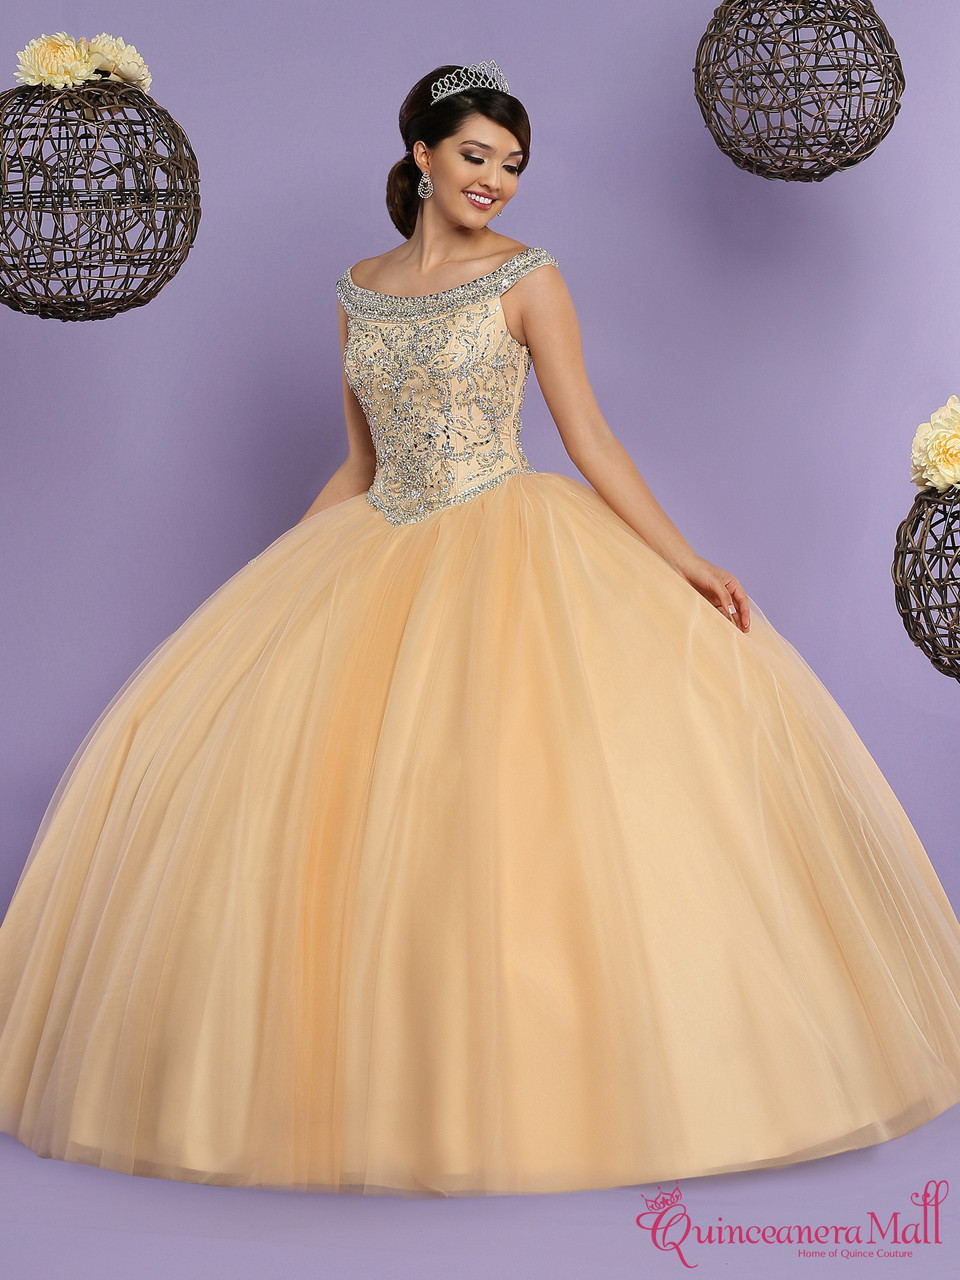 ee231b00890 Quinceanera Dress  80378 - Quinceanera Mall